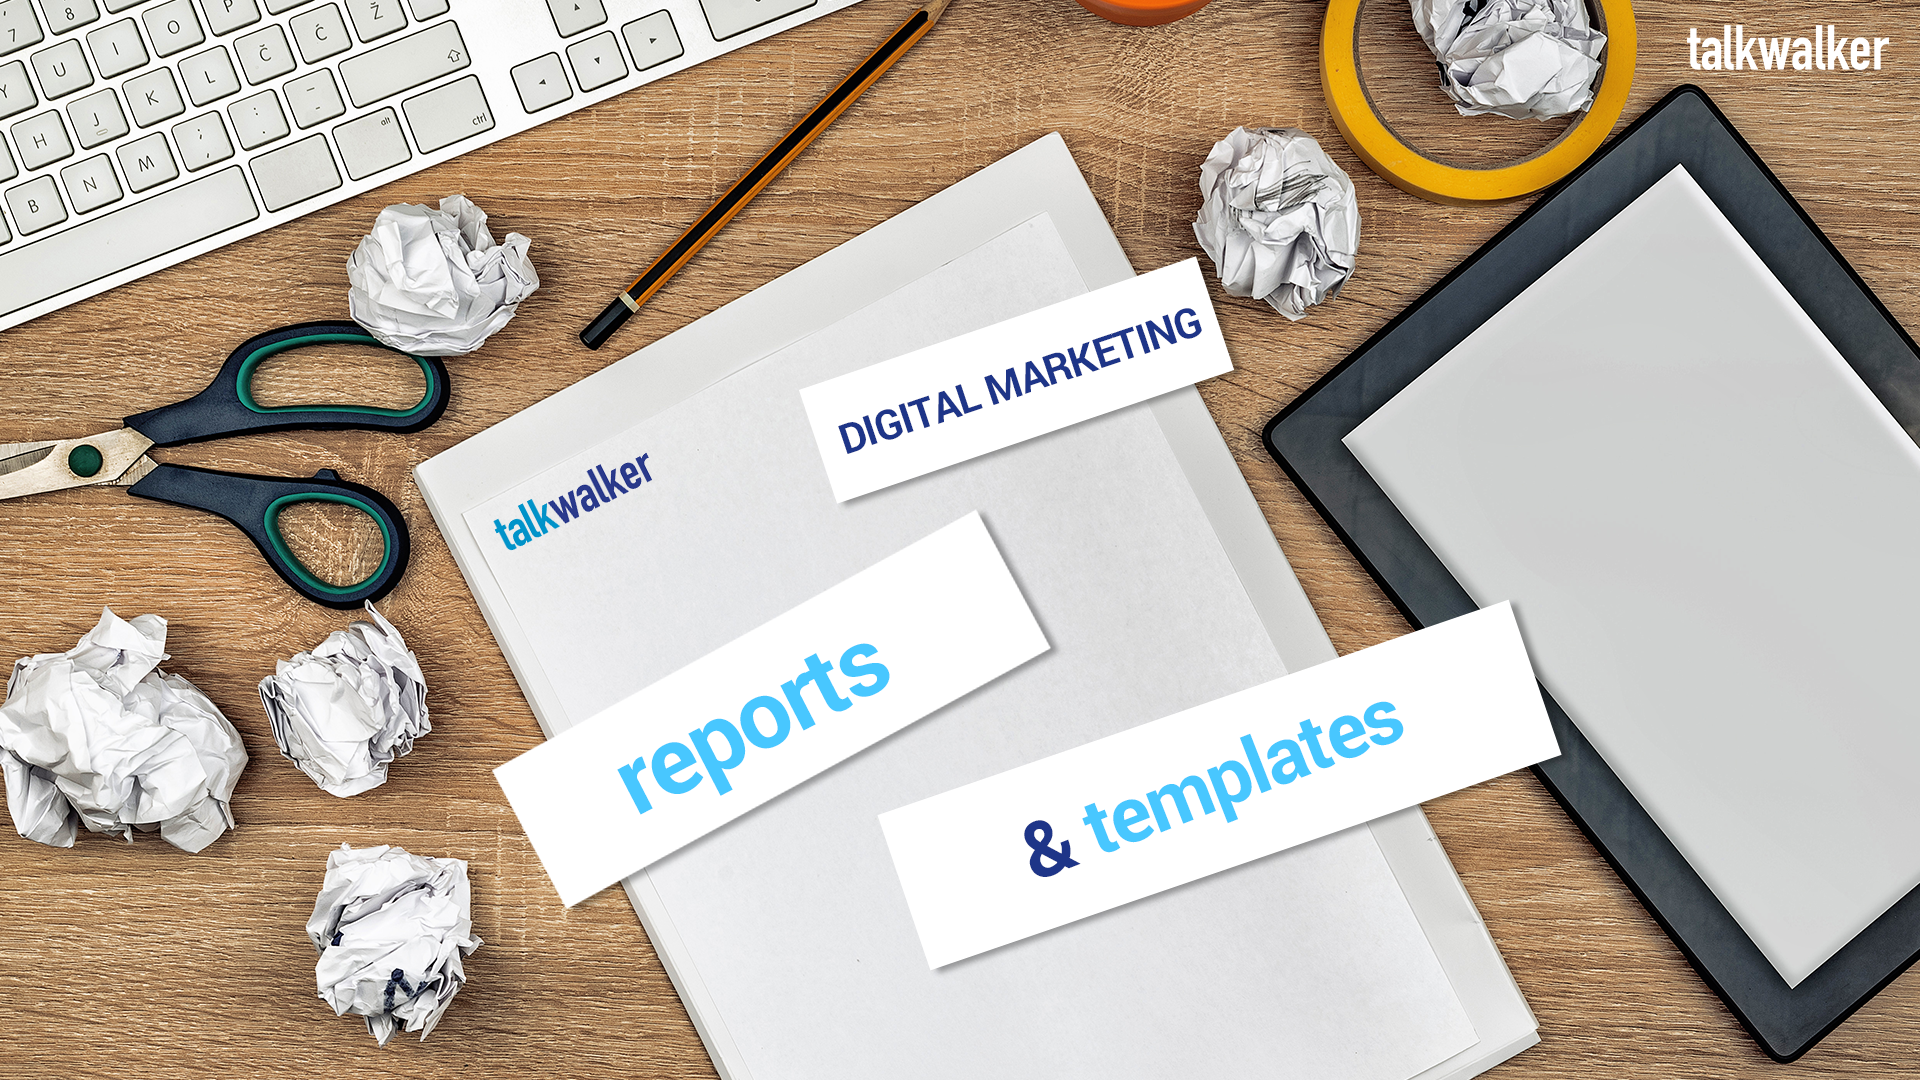 Digital marketing reports and templates